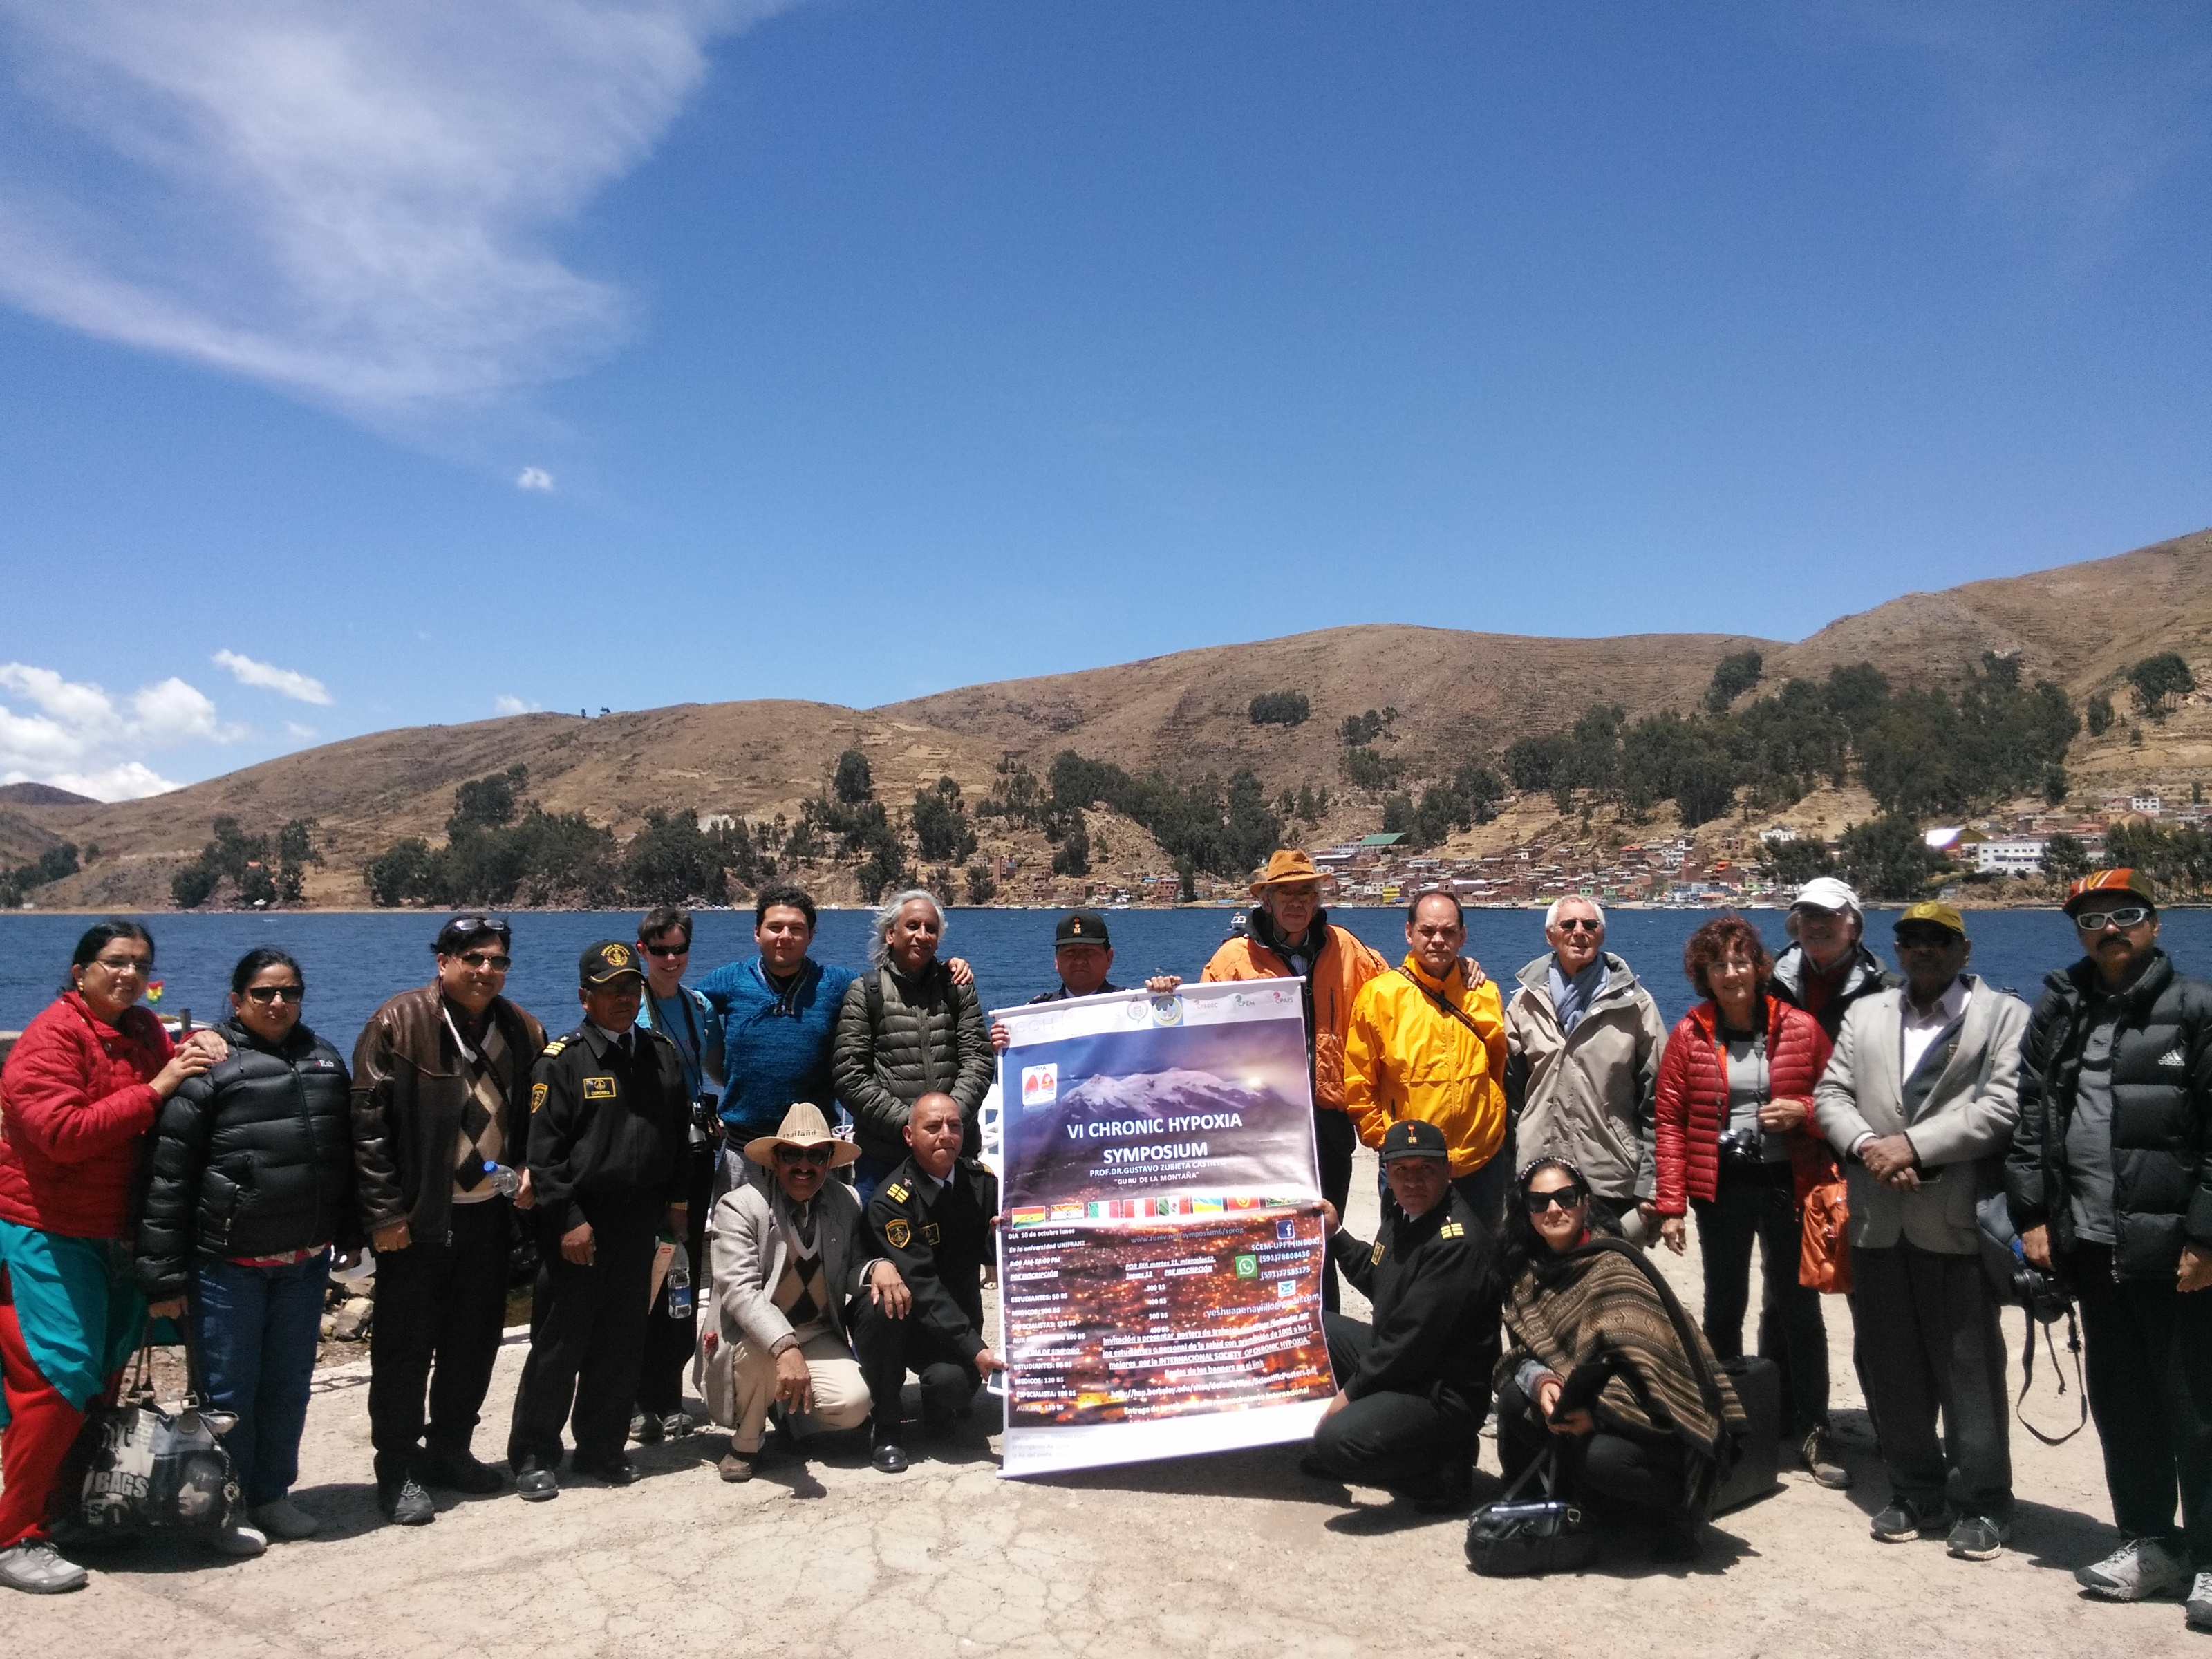 Arrival to the Titicaca Lake